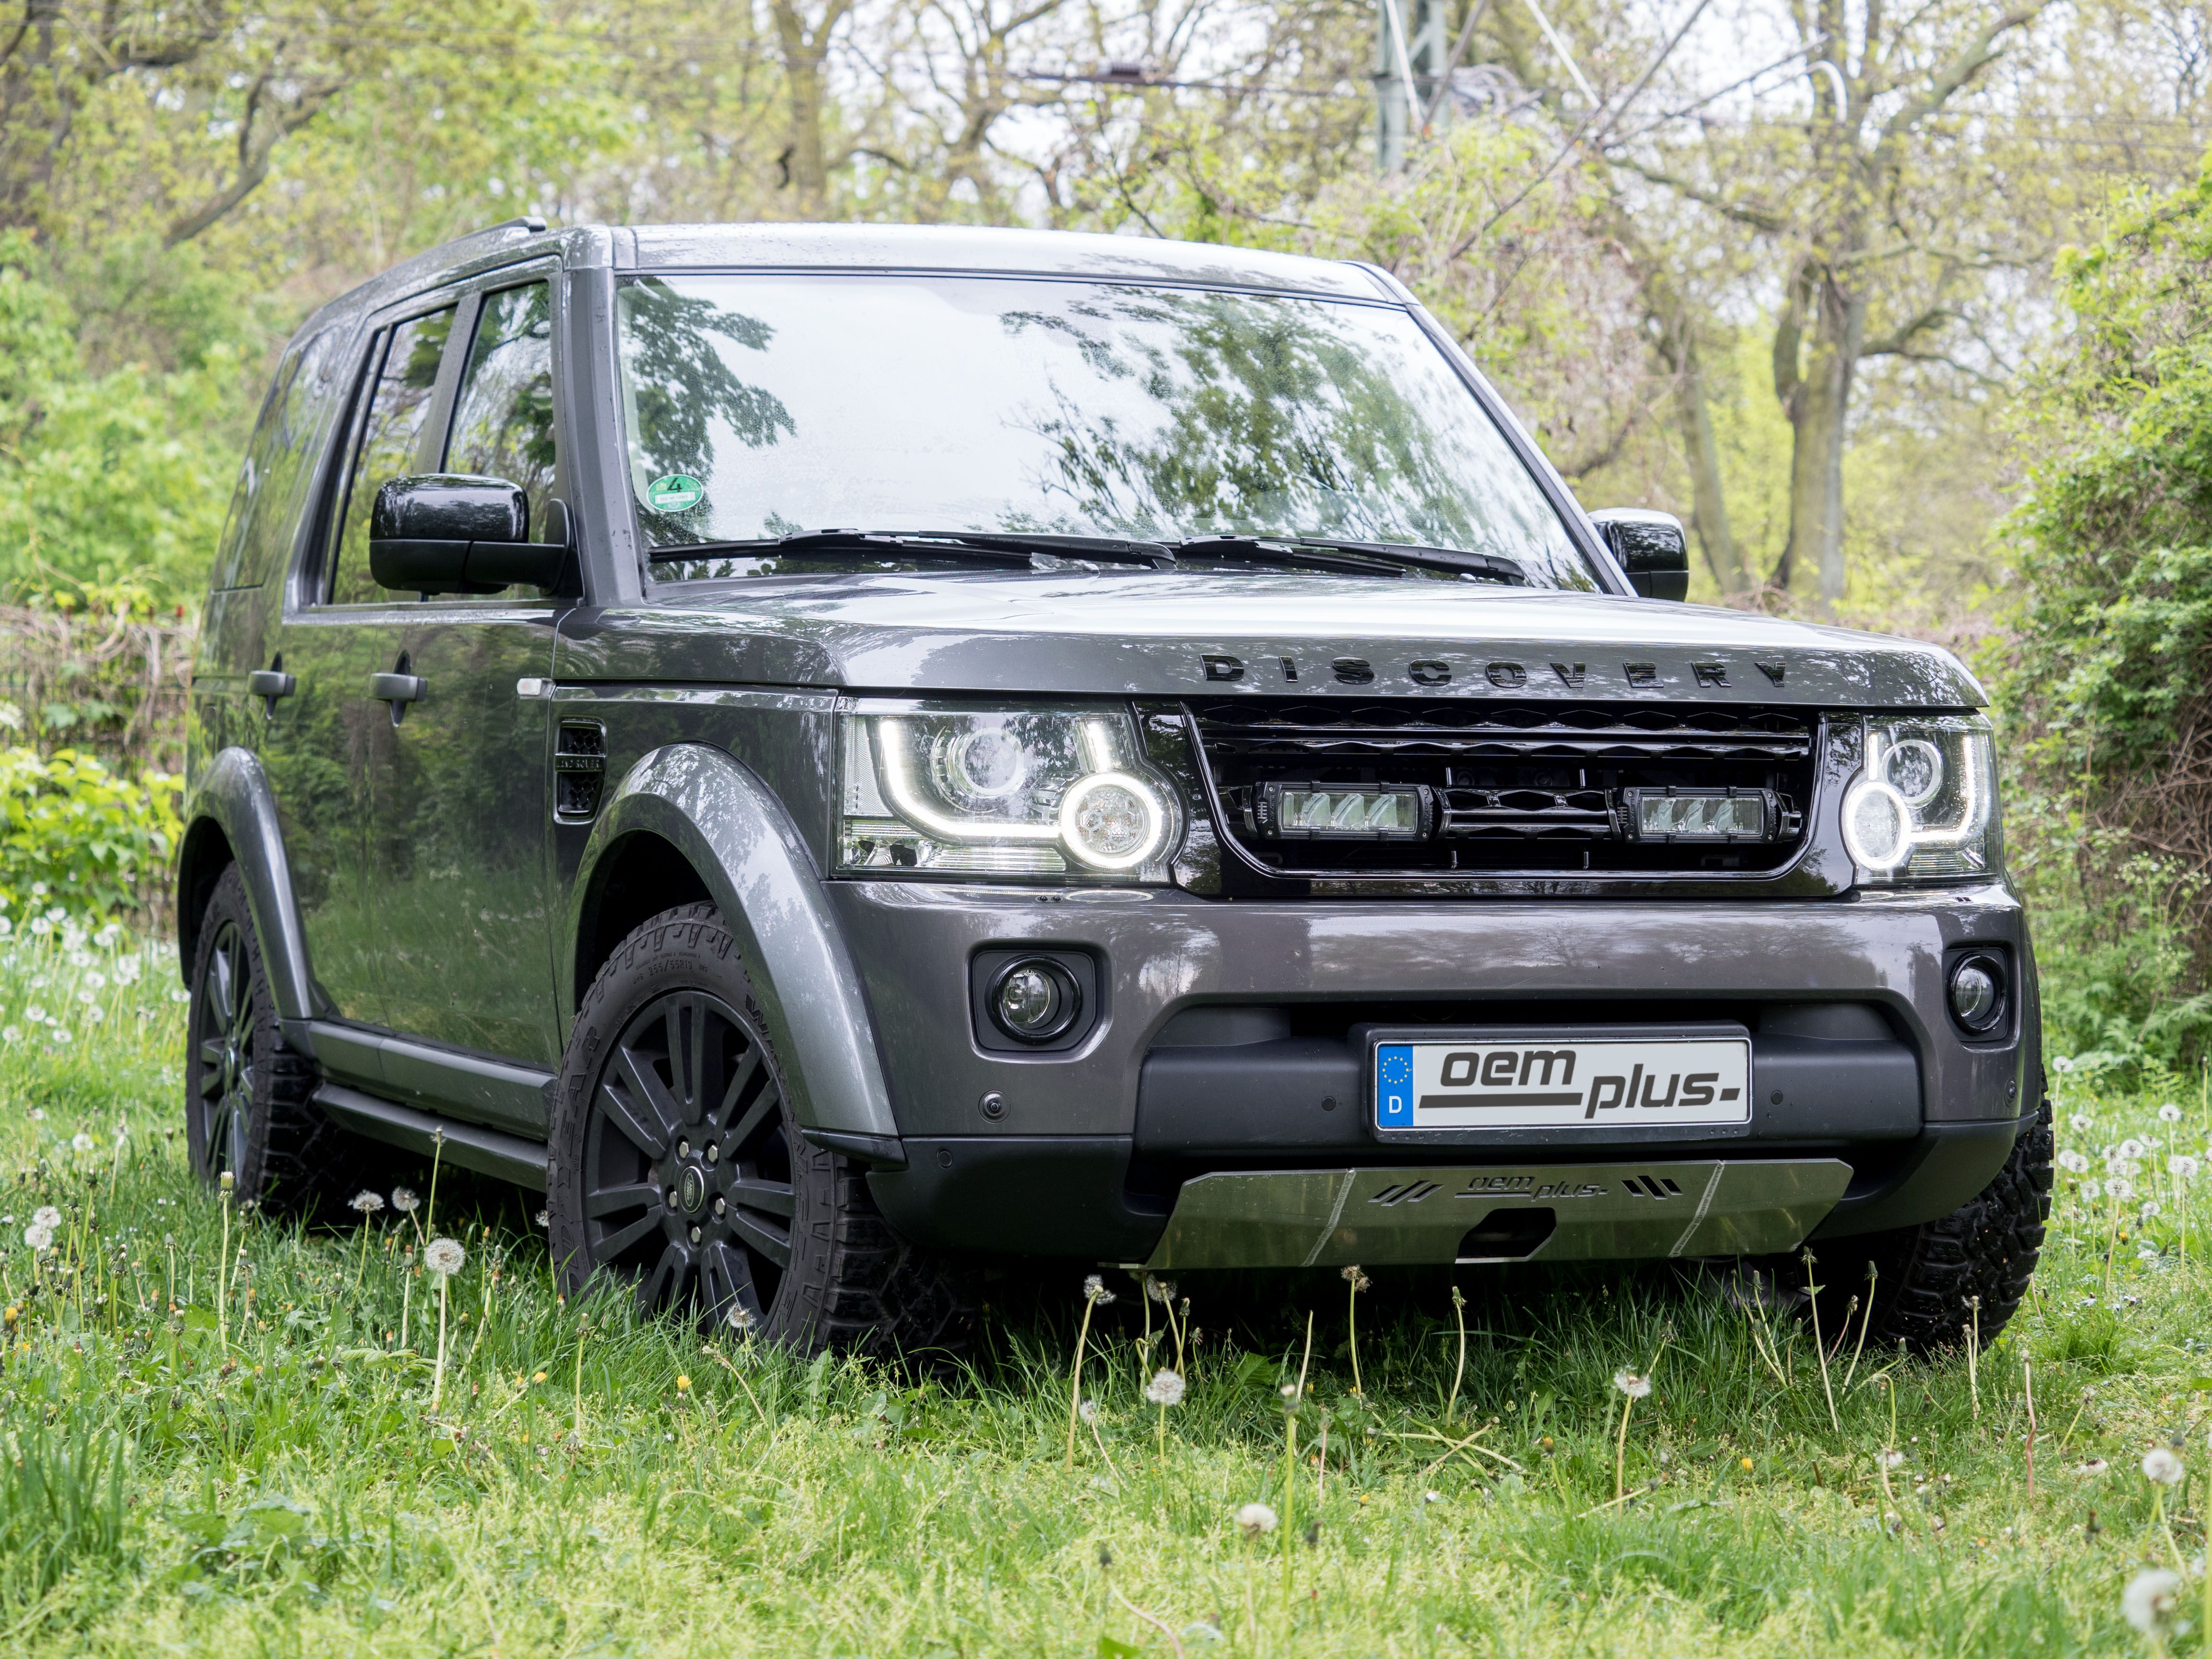 Land Rover Discovery with under body front protection and own